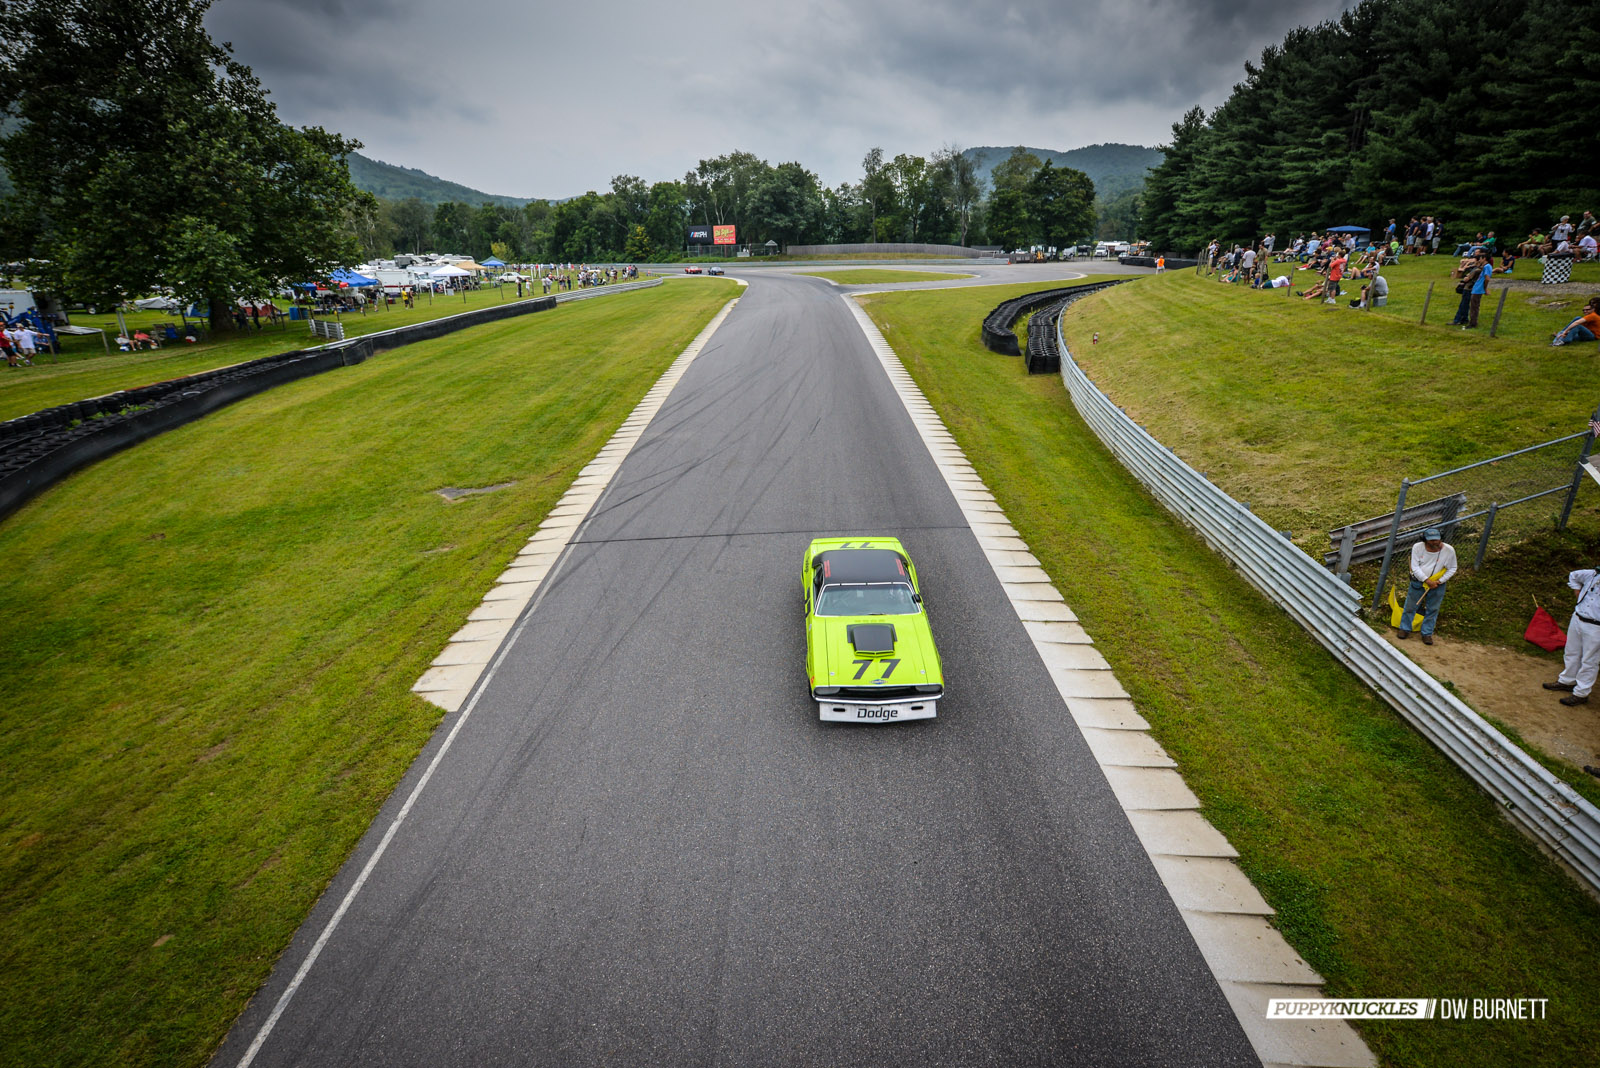 DW-Burnett-PUPPYKNUCKLES-Trans-Am-Historic-Lime-Rock-Sam-Posey-Challenger-3867-5